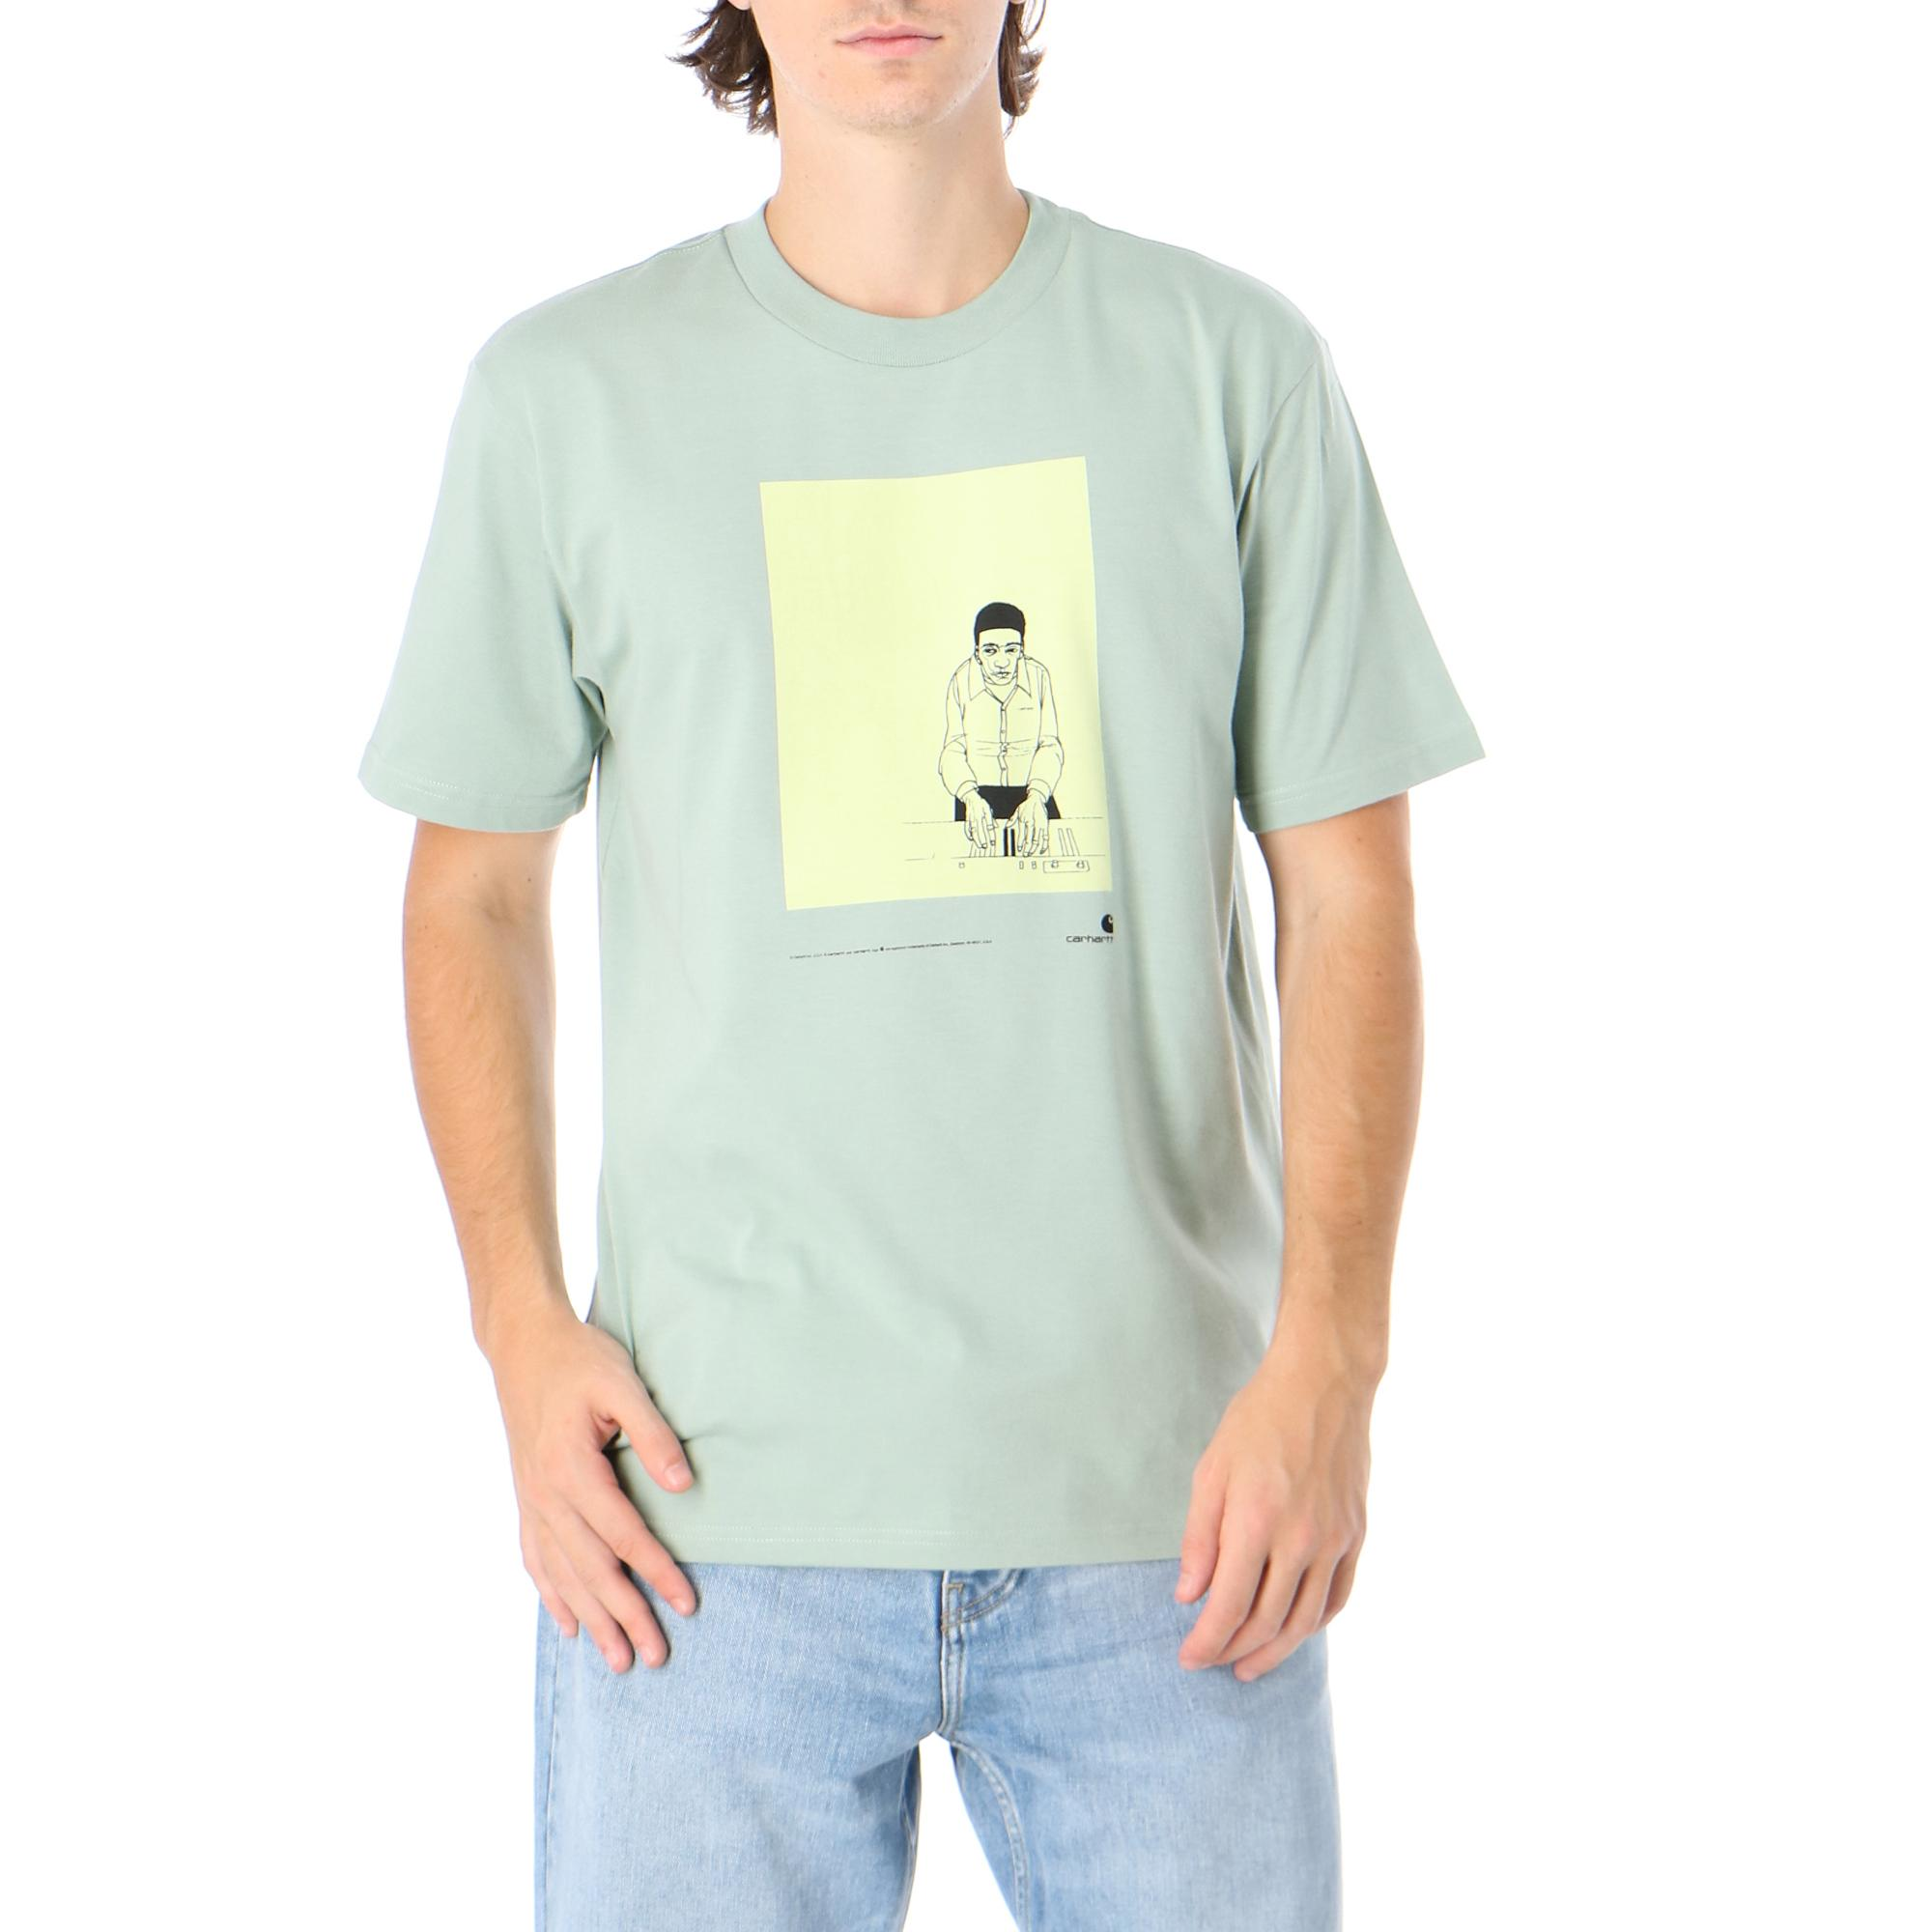 Carhartt S/s 1999 Ad Evan Hecox T-shirt Frosted green